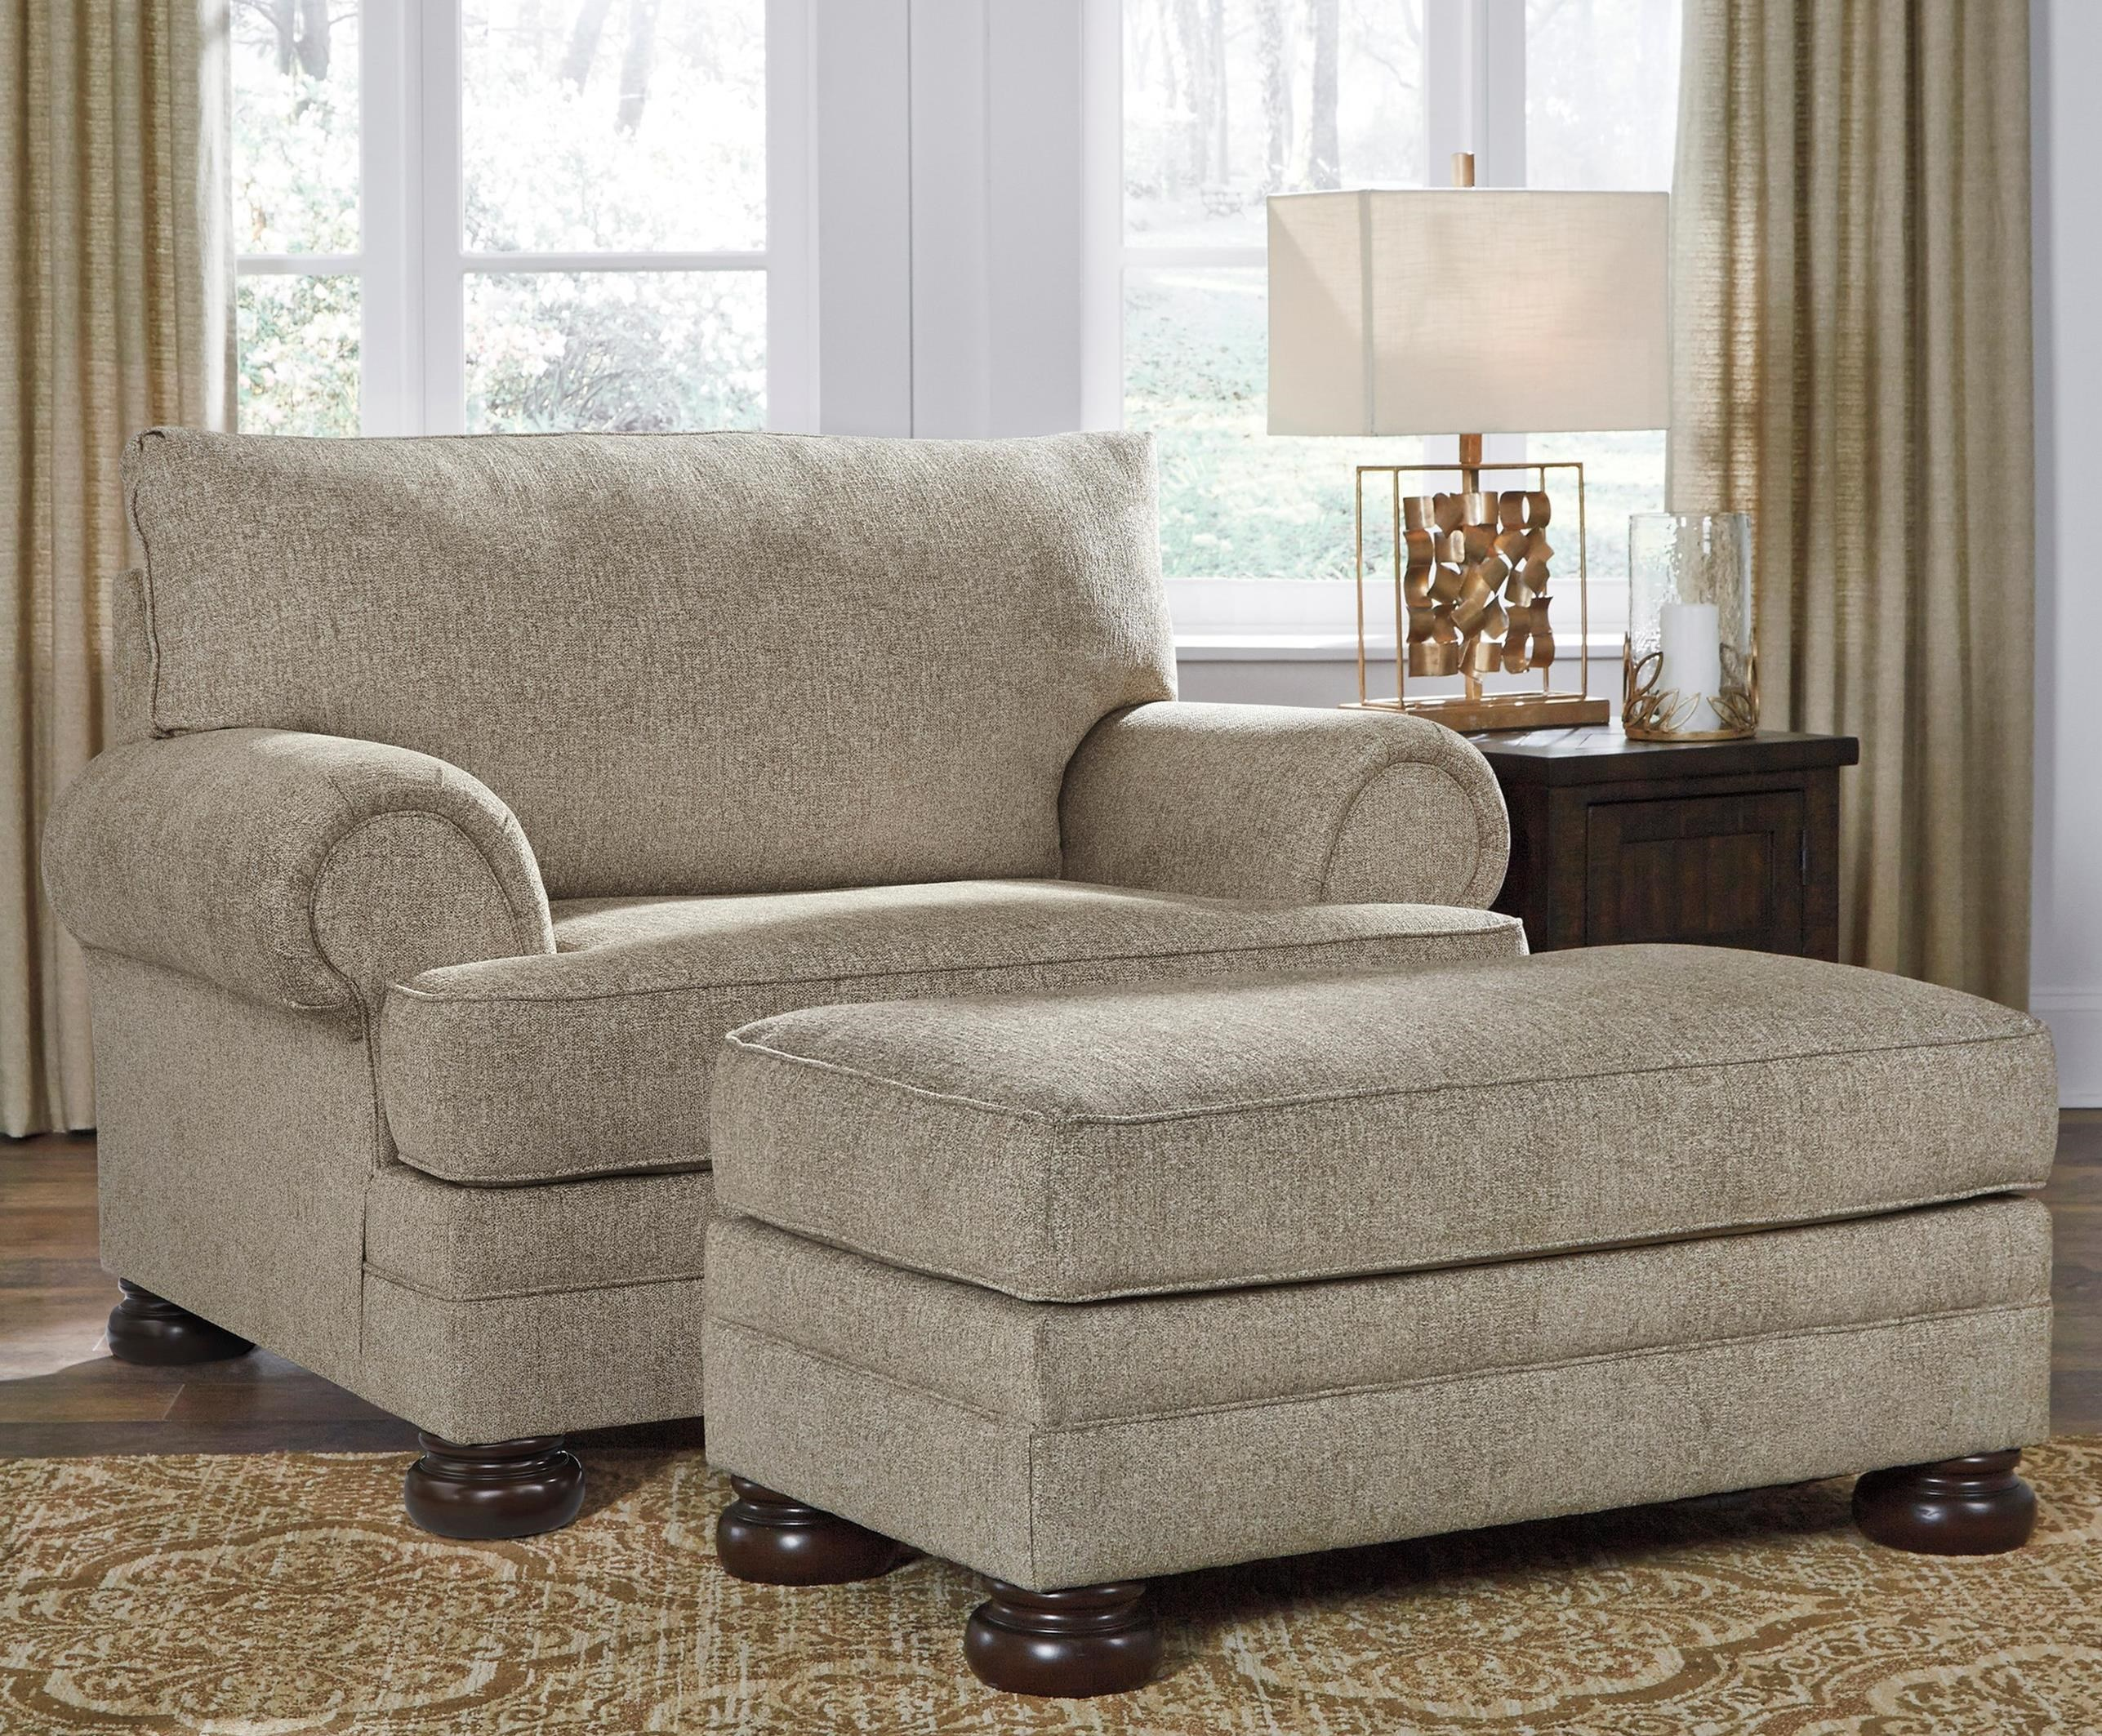 Kananwood Chair and a Half and Ottoman by Signature Design by Ashley at Catalog Outlet